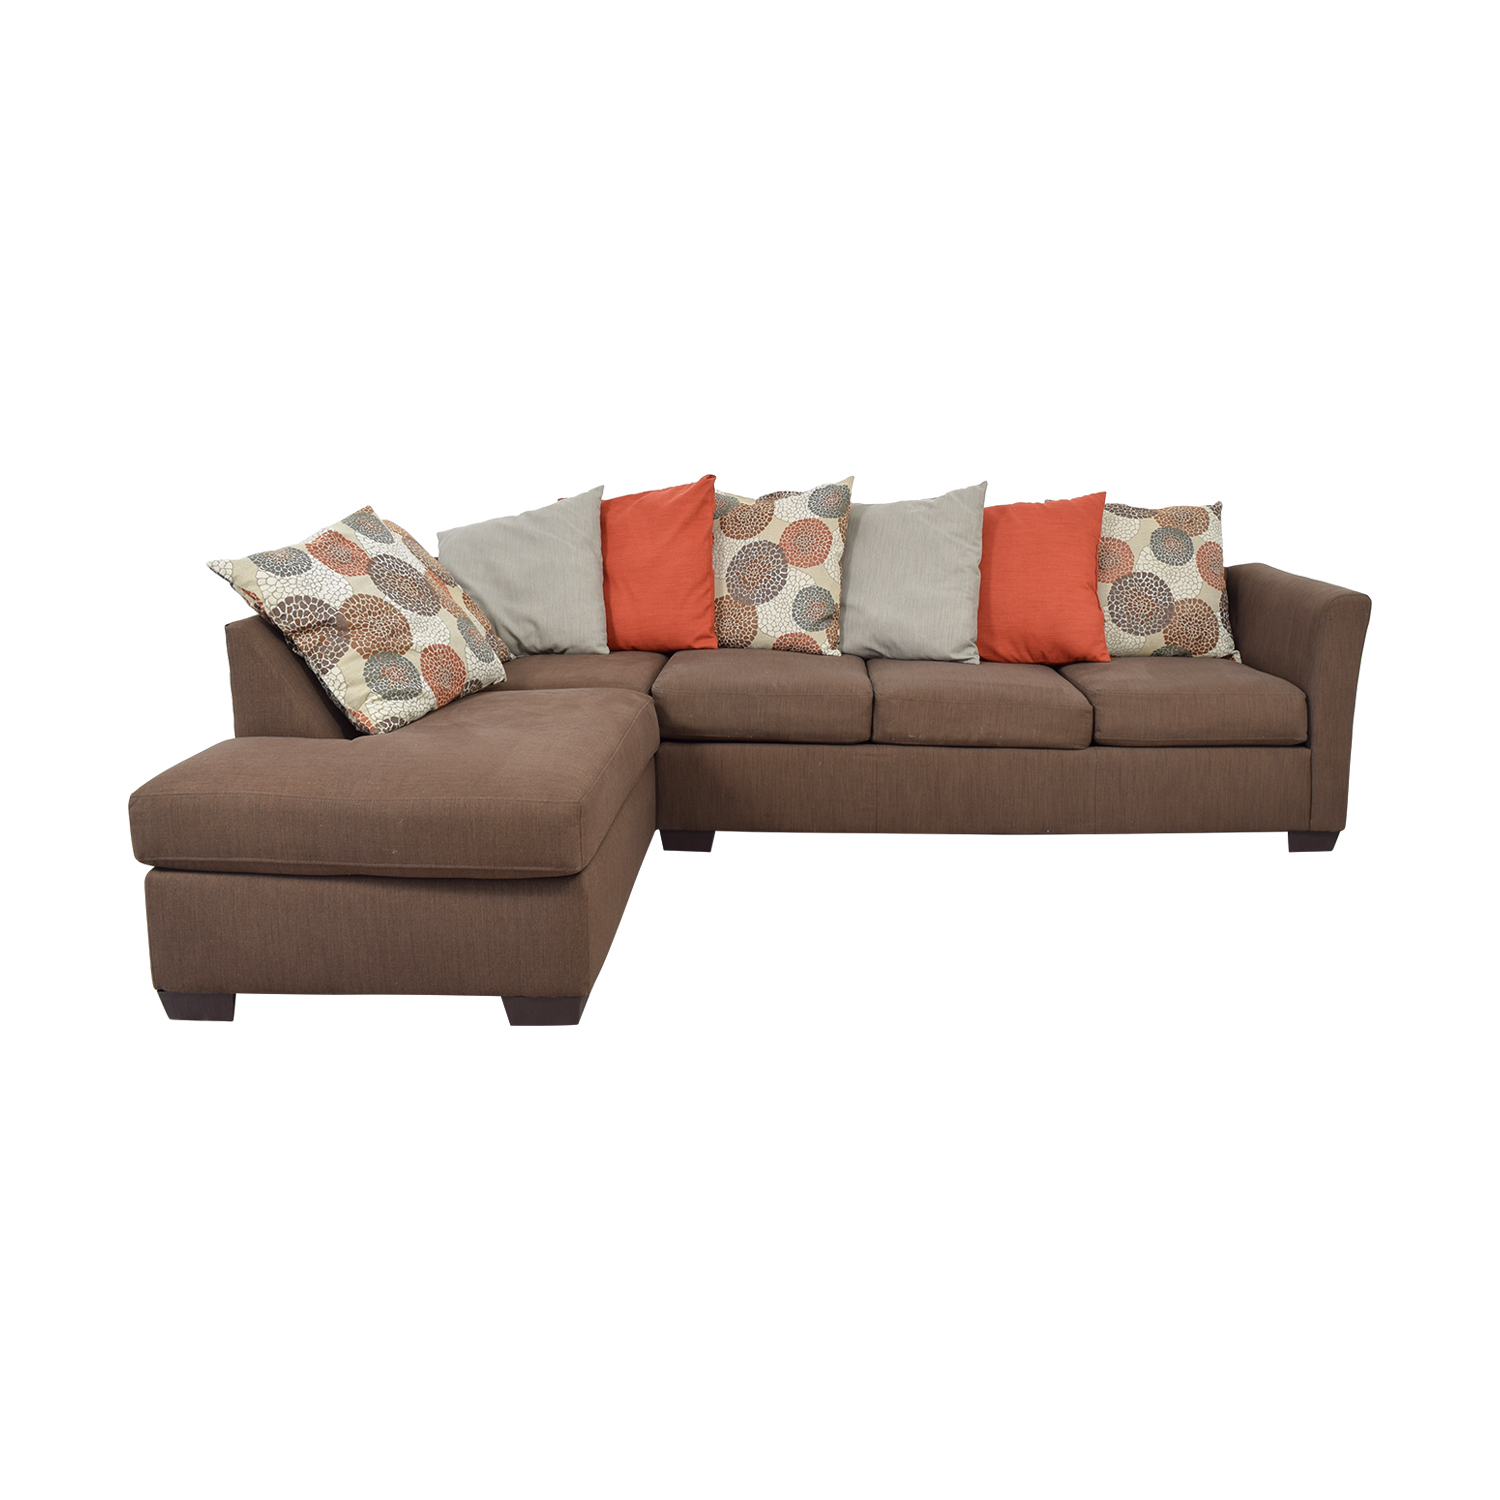 TriState Furniture TriState Furniture Sectional Sofa coupon